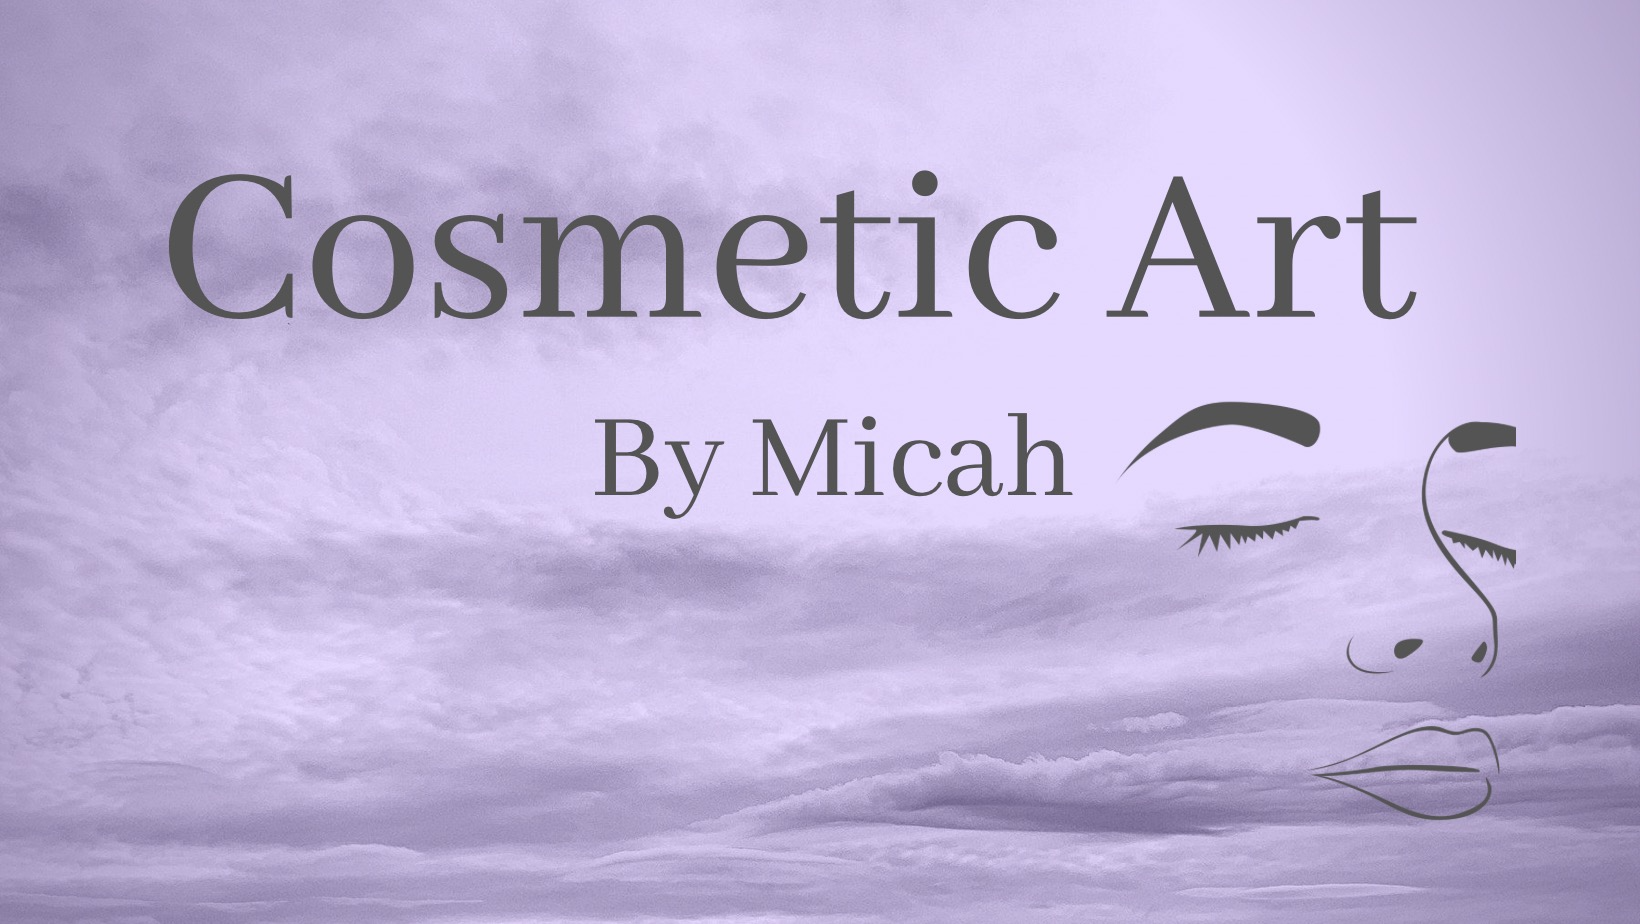 Responsive image Logo Cosmetic Art by Micah